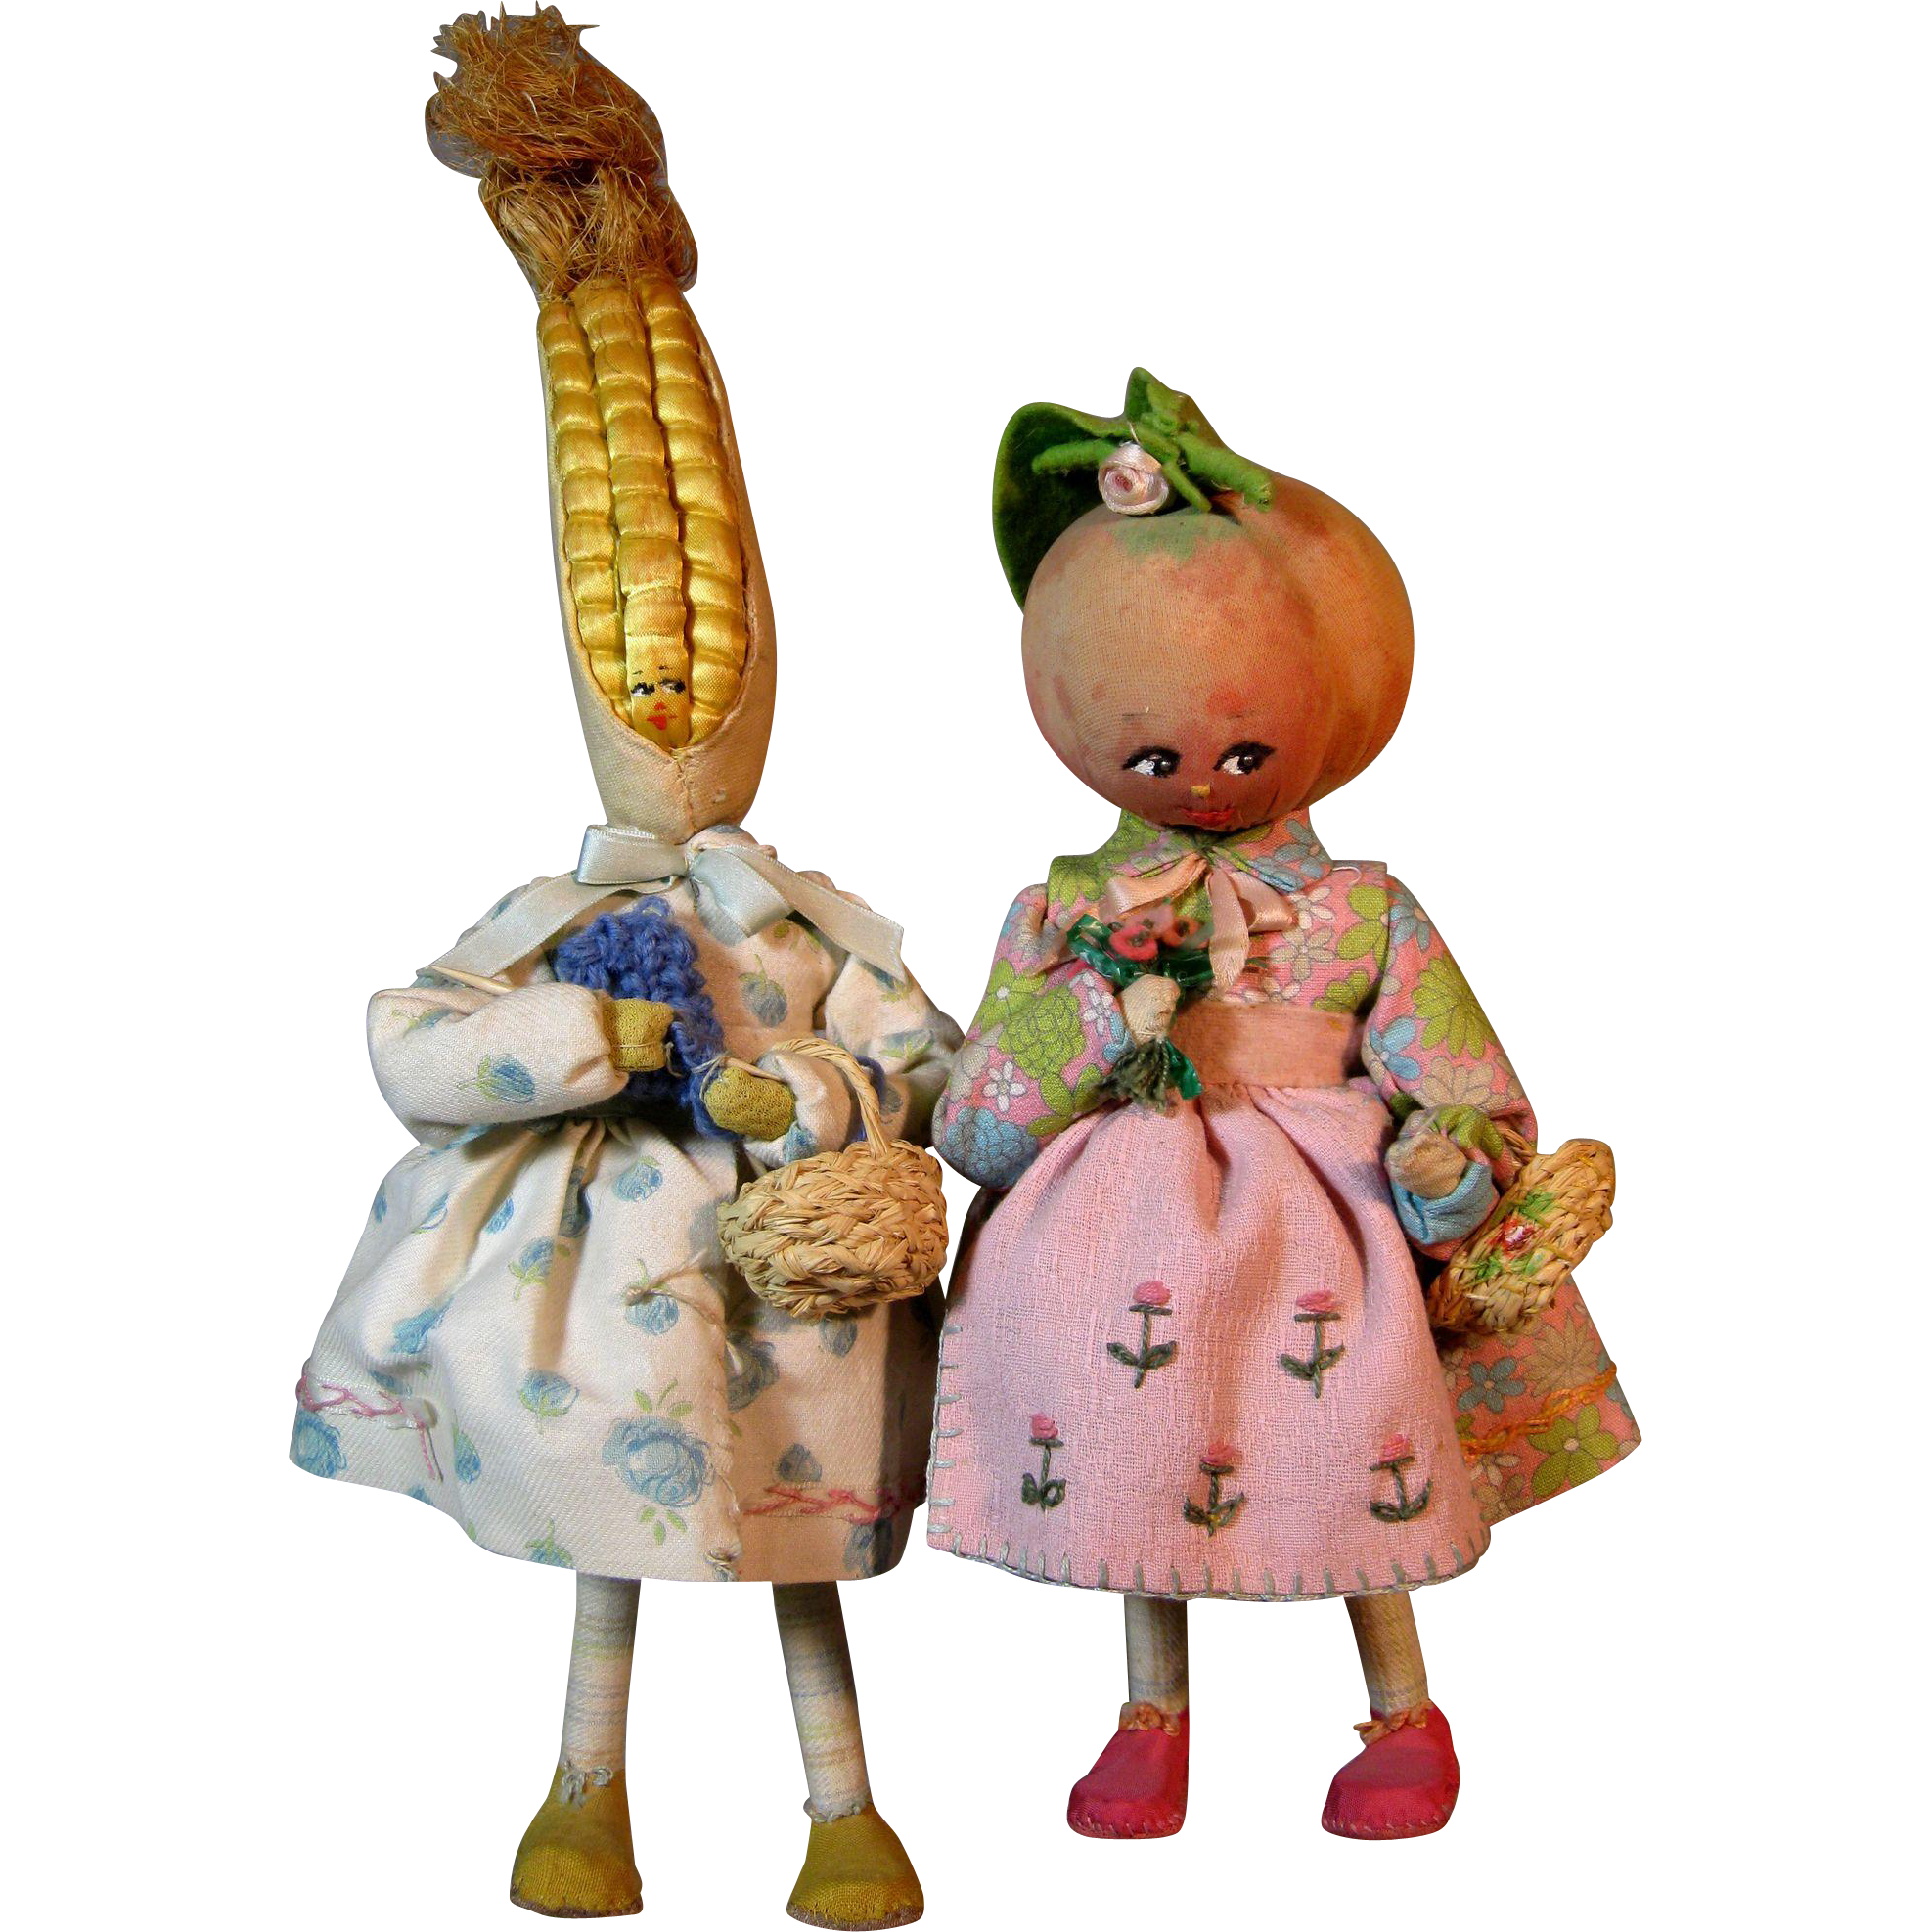 The Wonderful Cloth Dolls